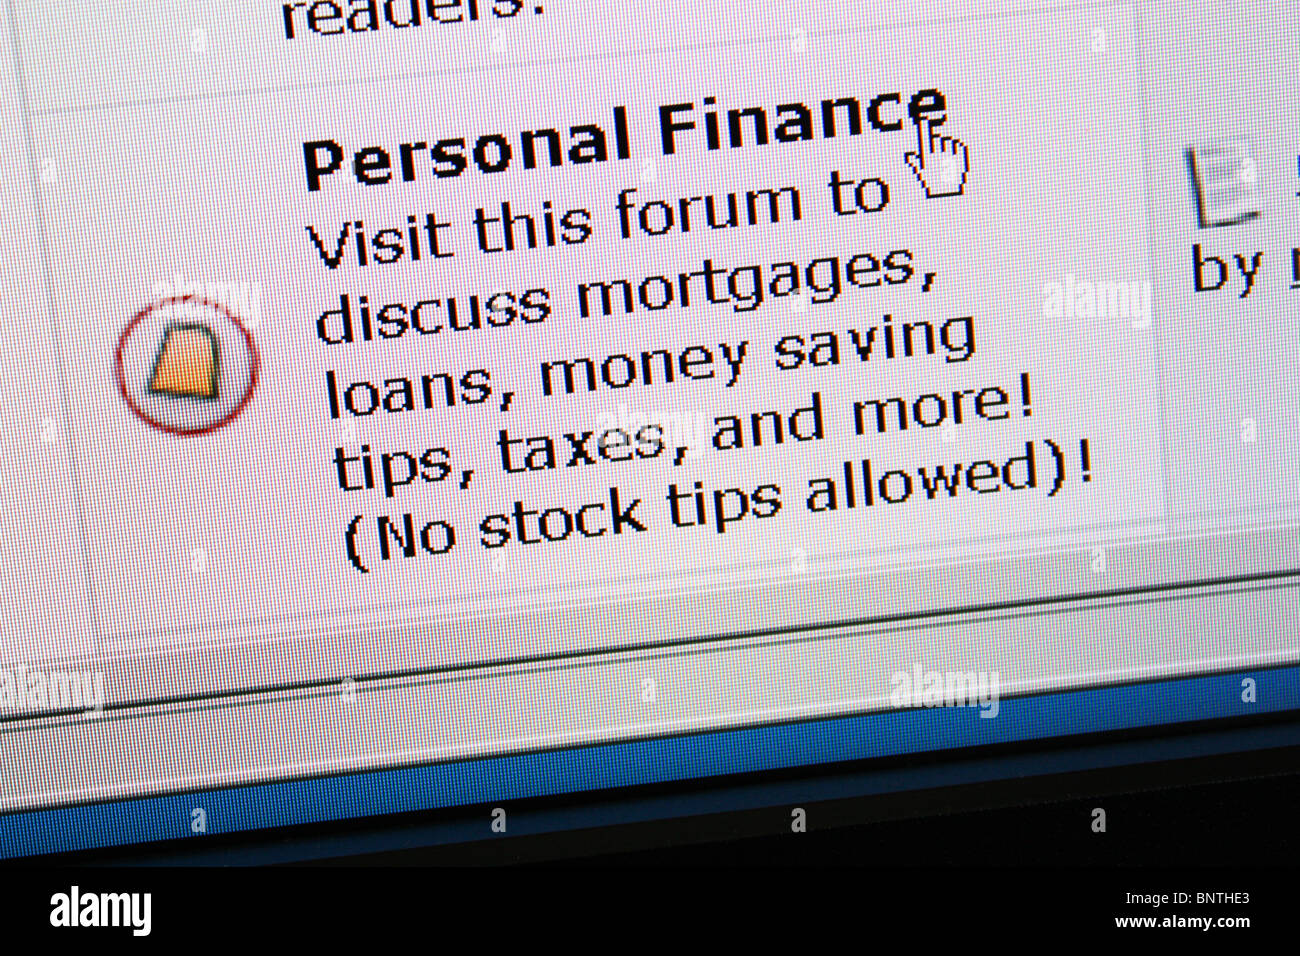 online discussion forum personal finance - Stock Image